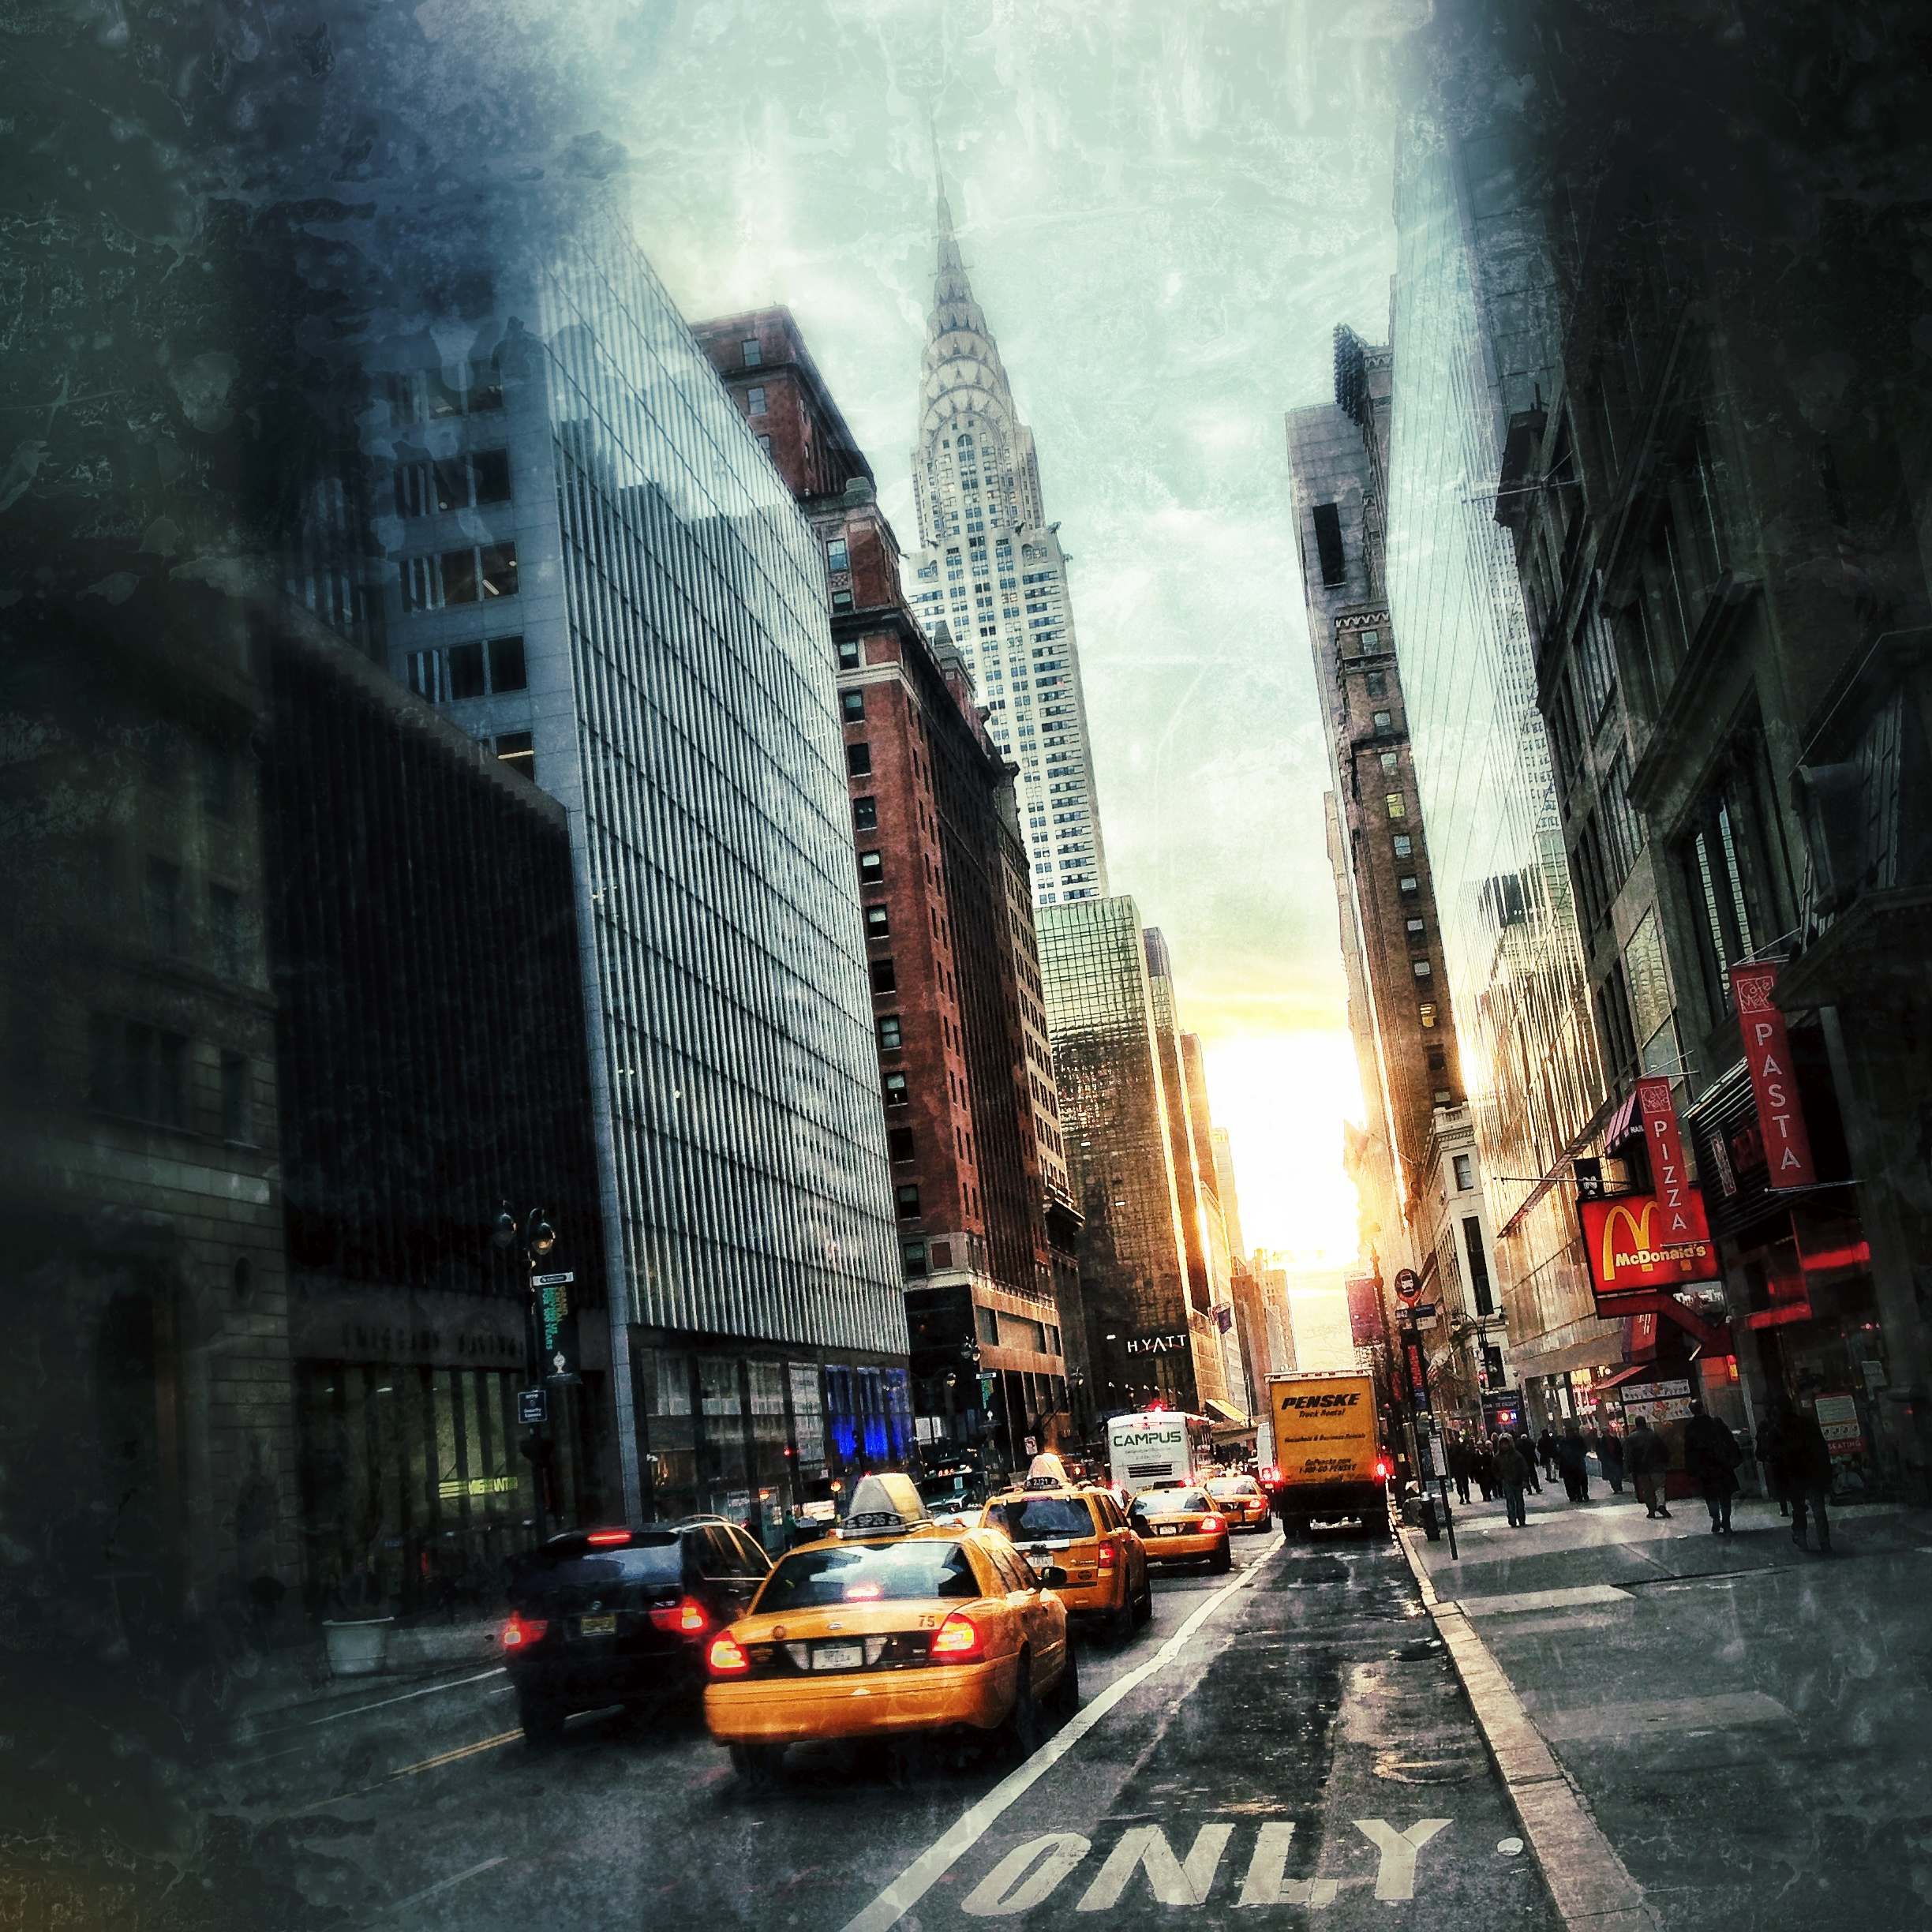 From New York City: File:Sunrise In Midtown, New York City